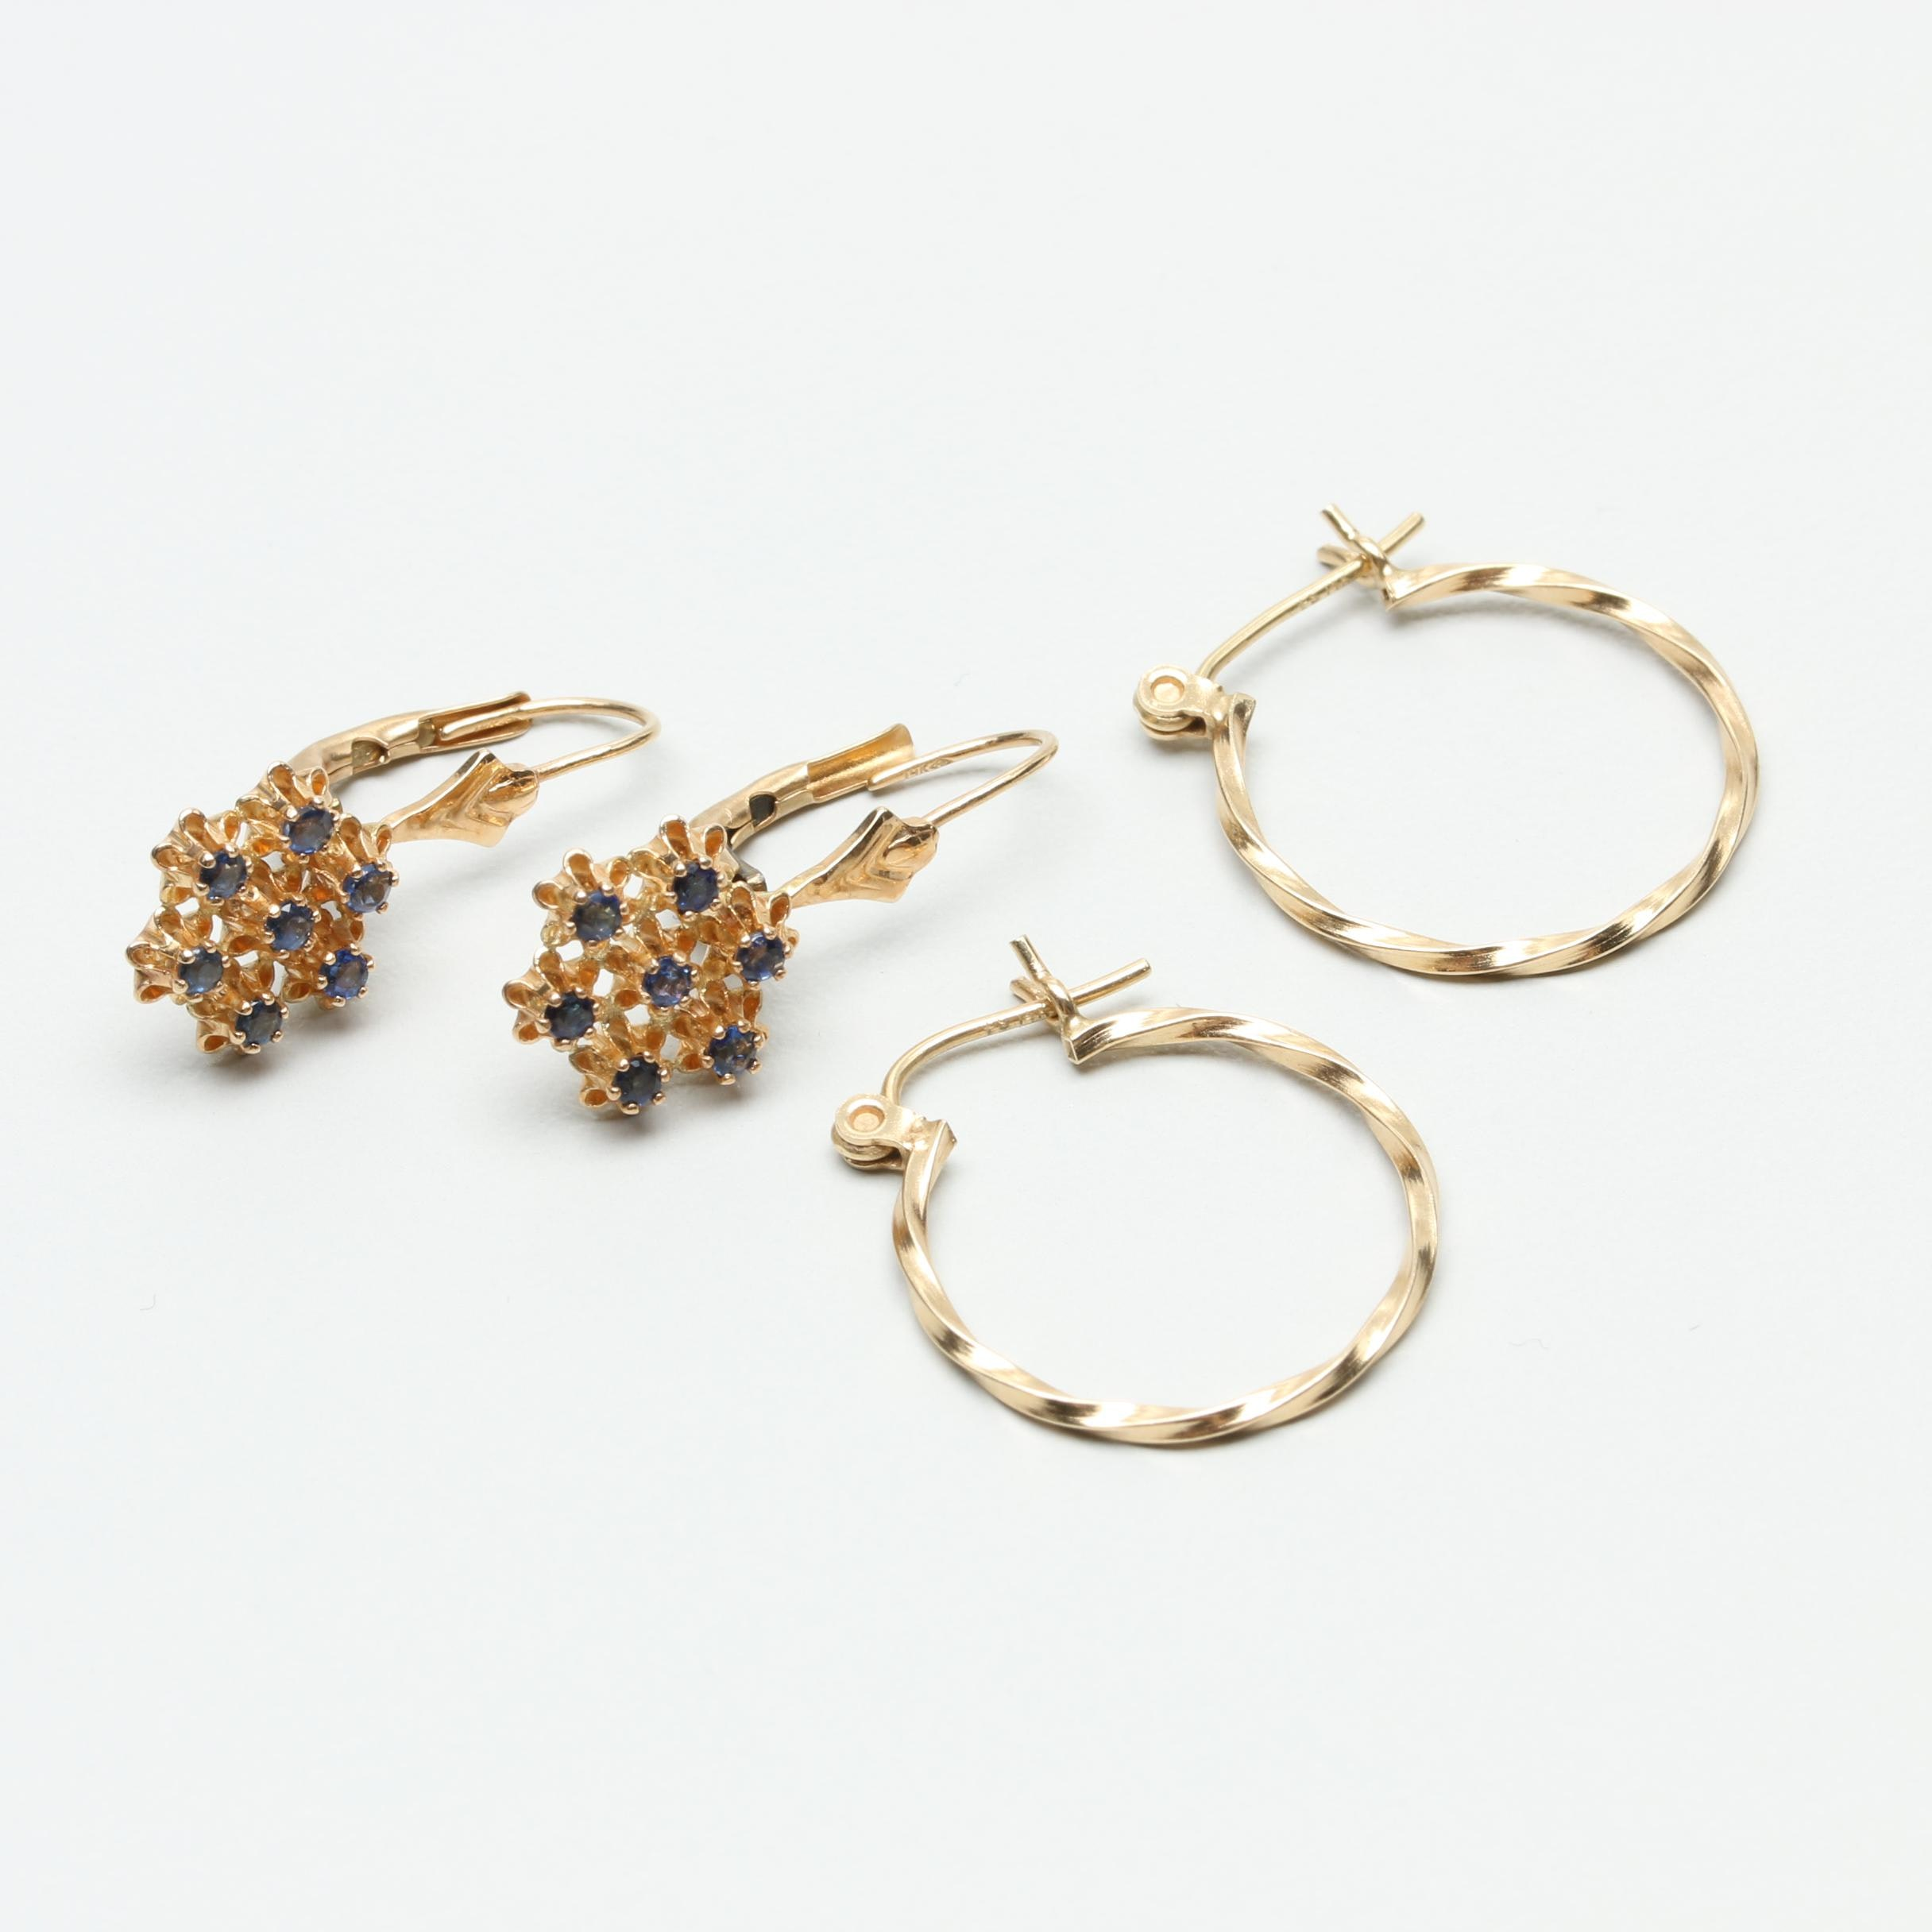 14K Yellow Gold Earring Selection Including Sapphire